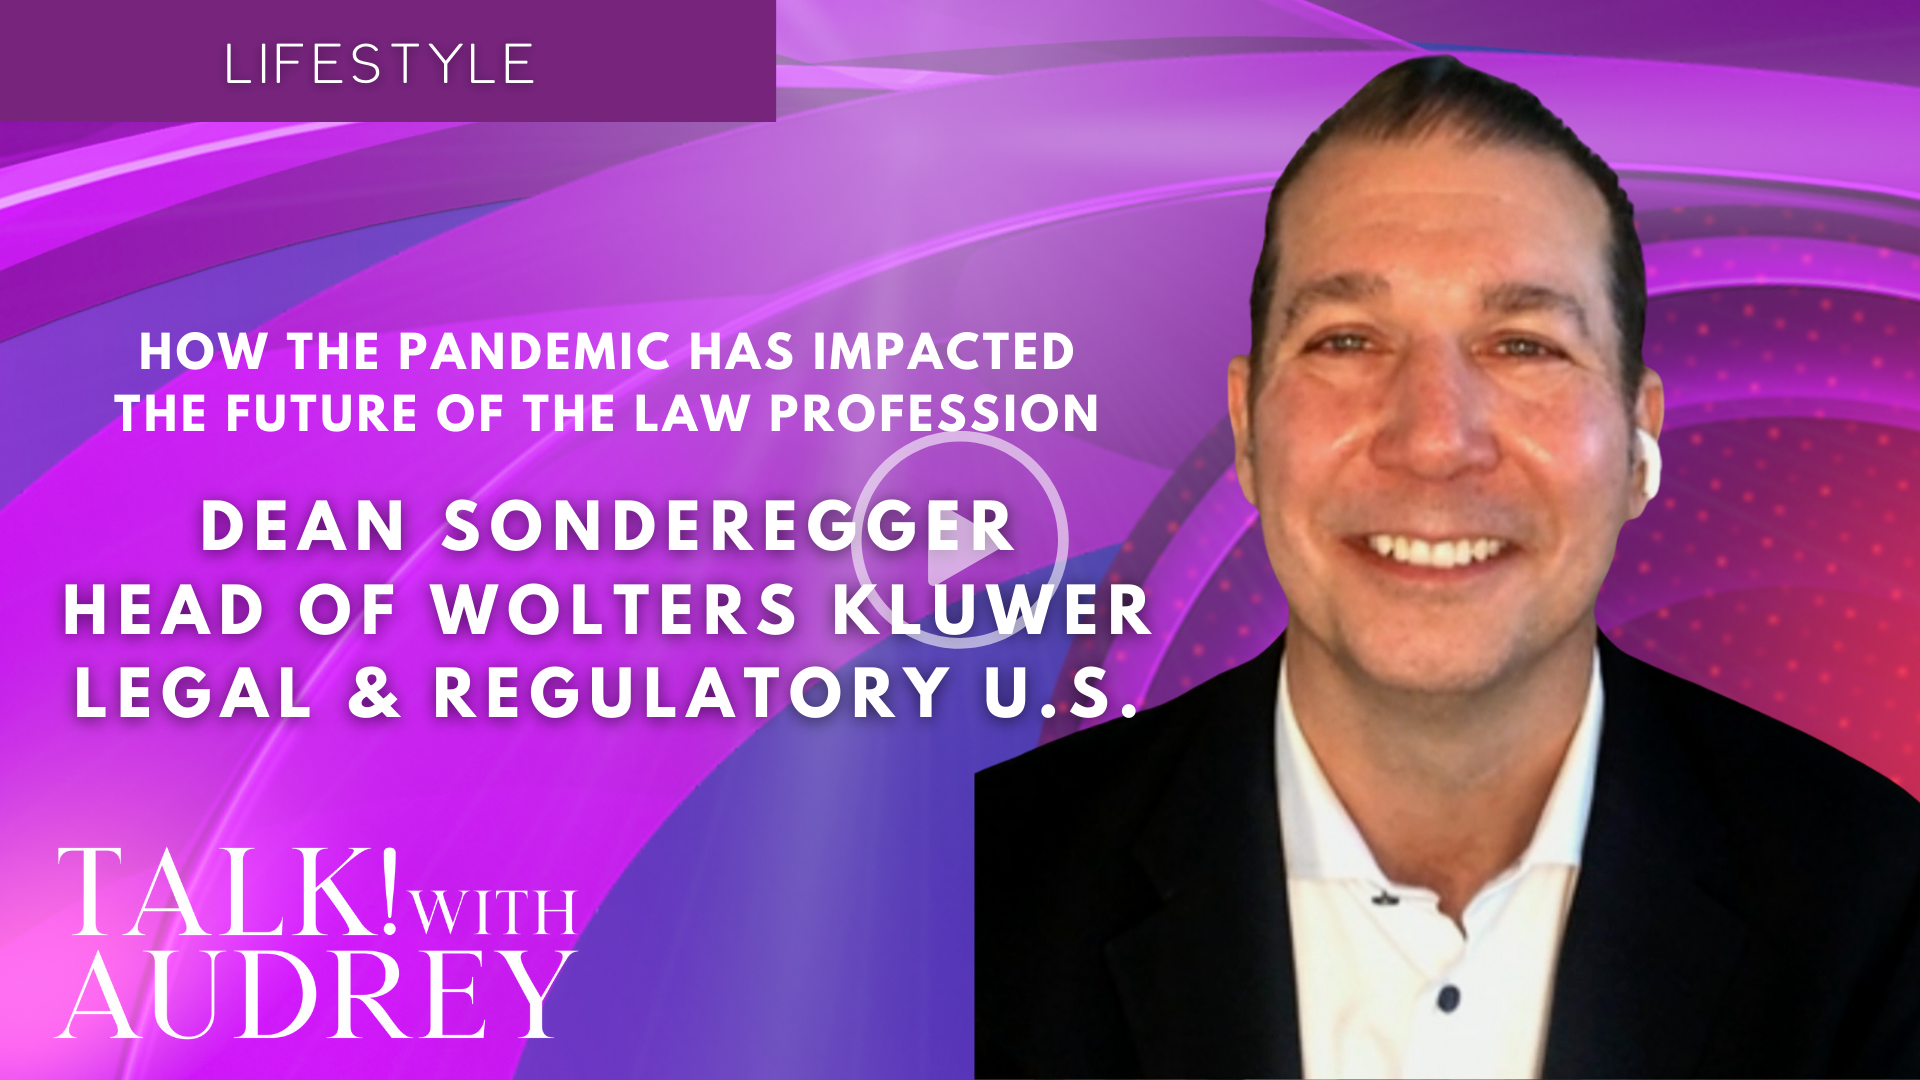 Dean Sonderegger, Head of the Wolters Kluwer Legal and Regulatory U.S. – How the Pandemic Has Impacted the Future of the Law Profession